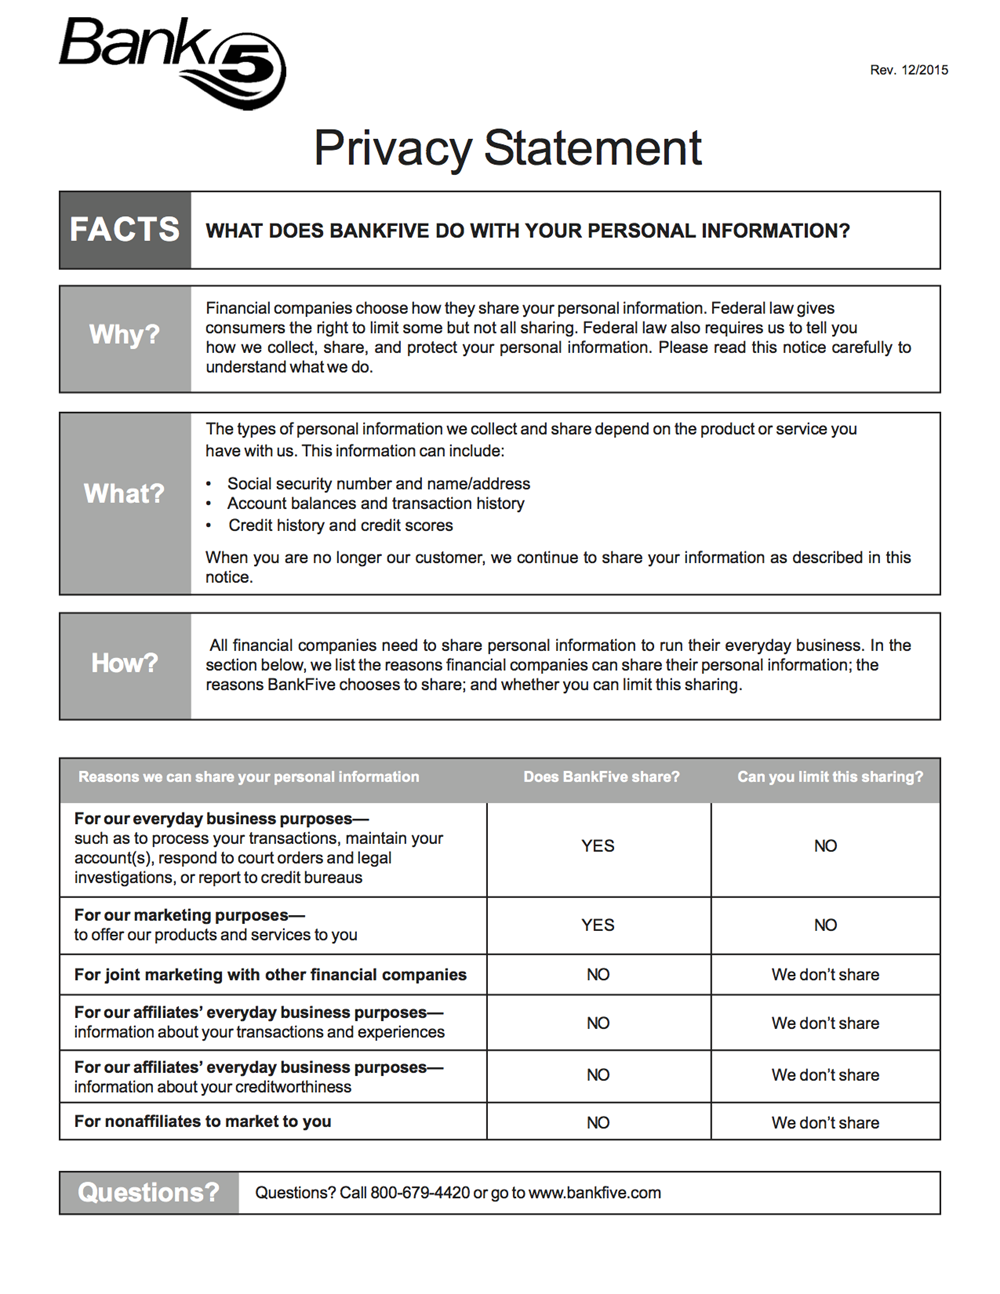 Privacy Statement PDF